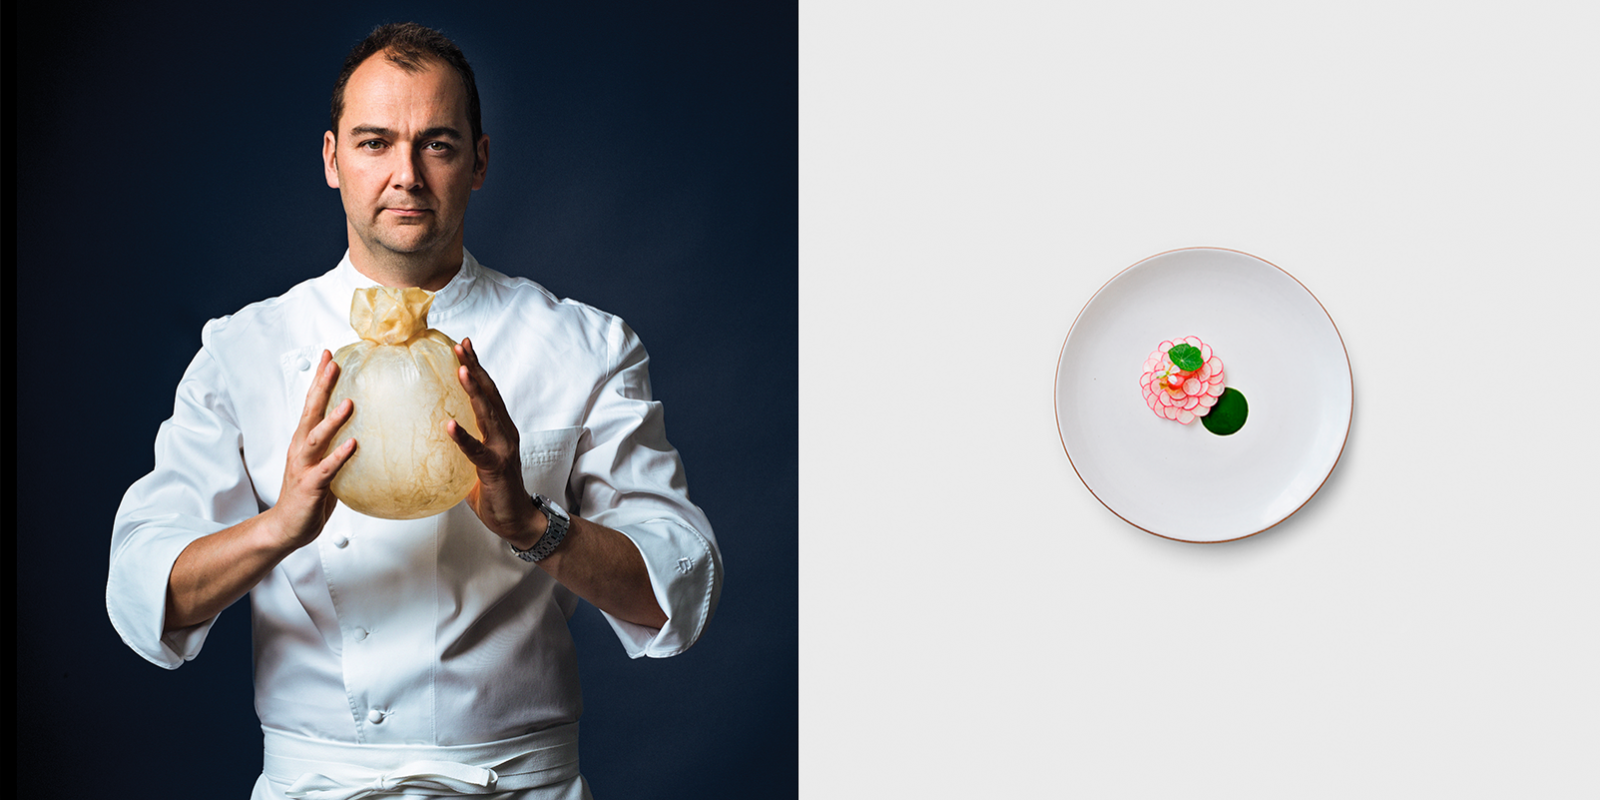 How Daniel Humm Became The World's Best Chef